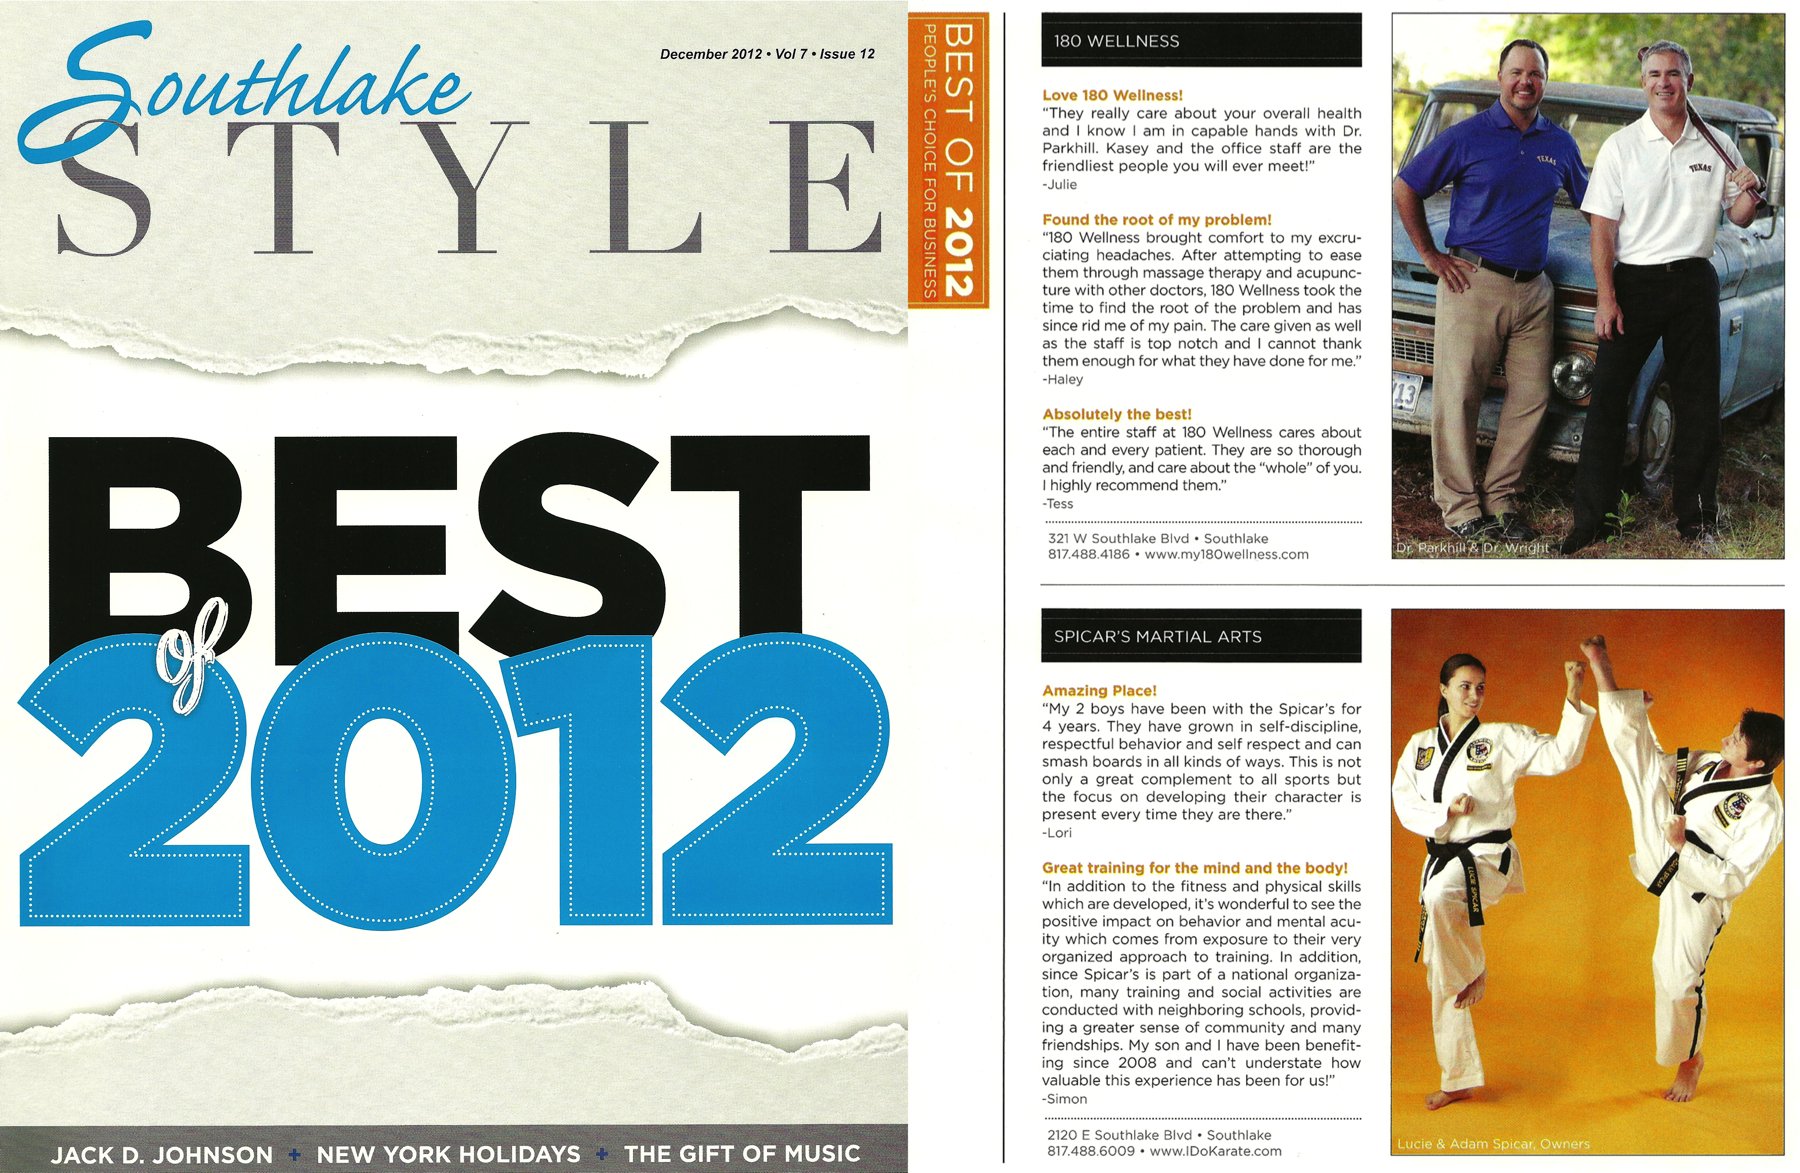 Spicar's Martial Arts Taekwondo Karate featured in the Best of 2012 issue of Southlake Style.